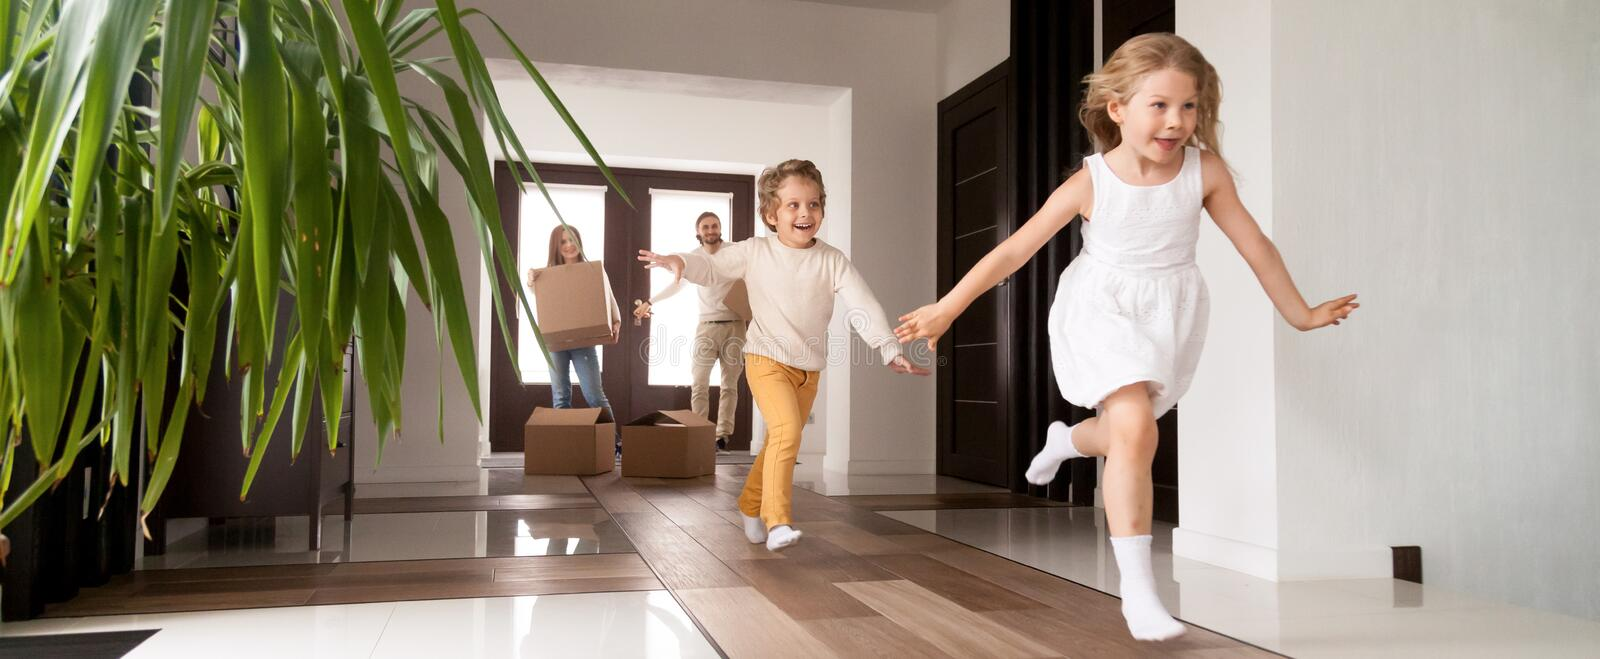 Kids running into new house parents with boxes on background royalty free stock image